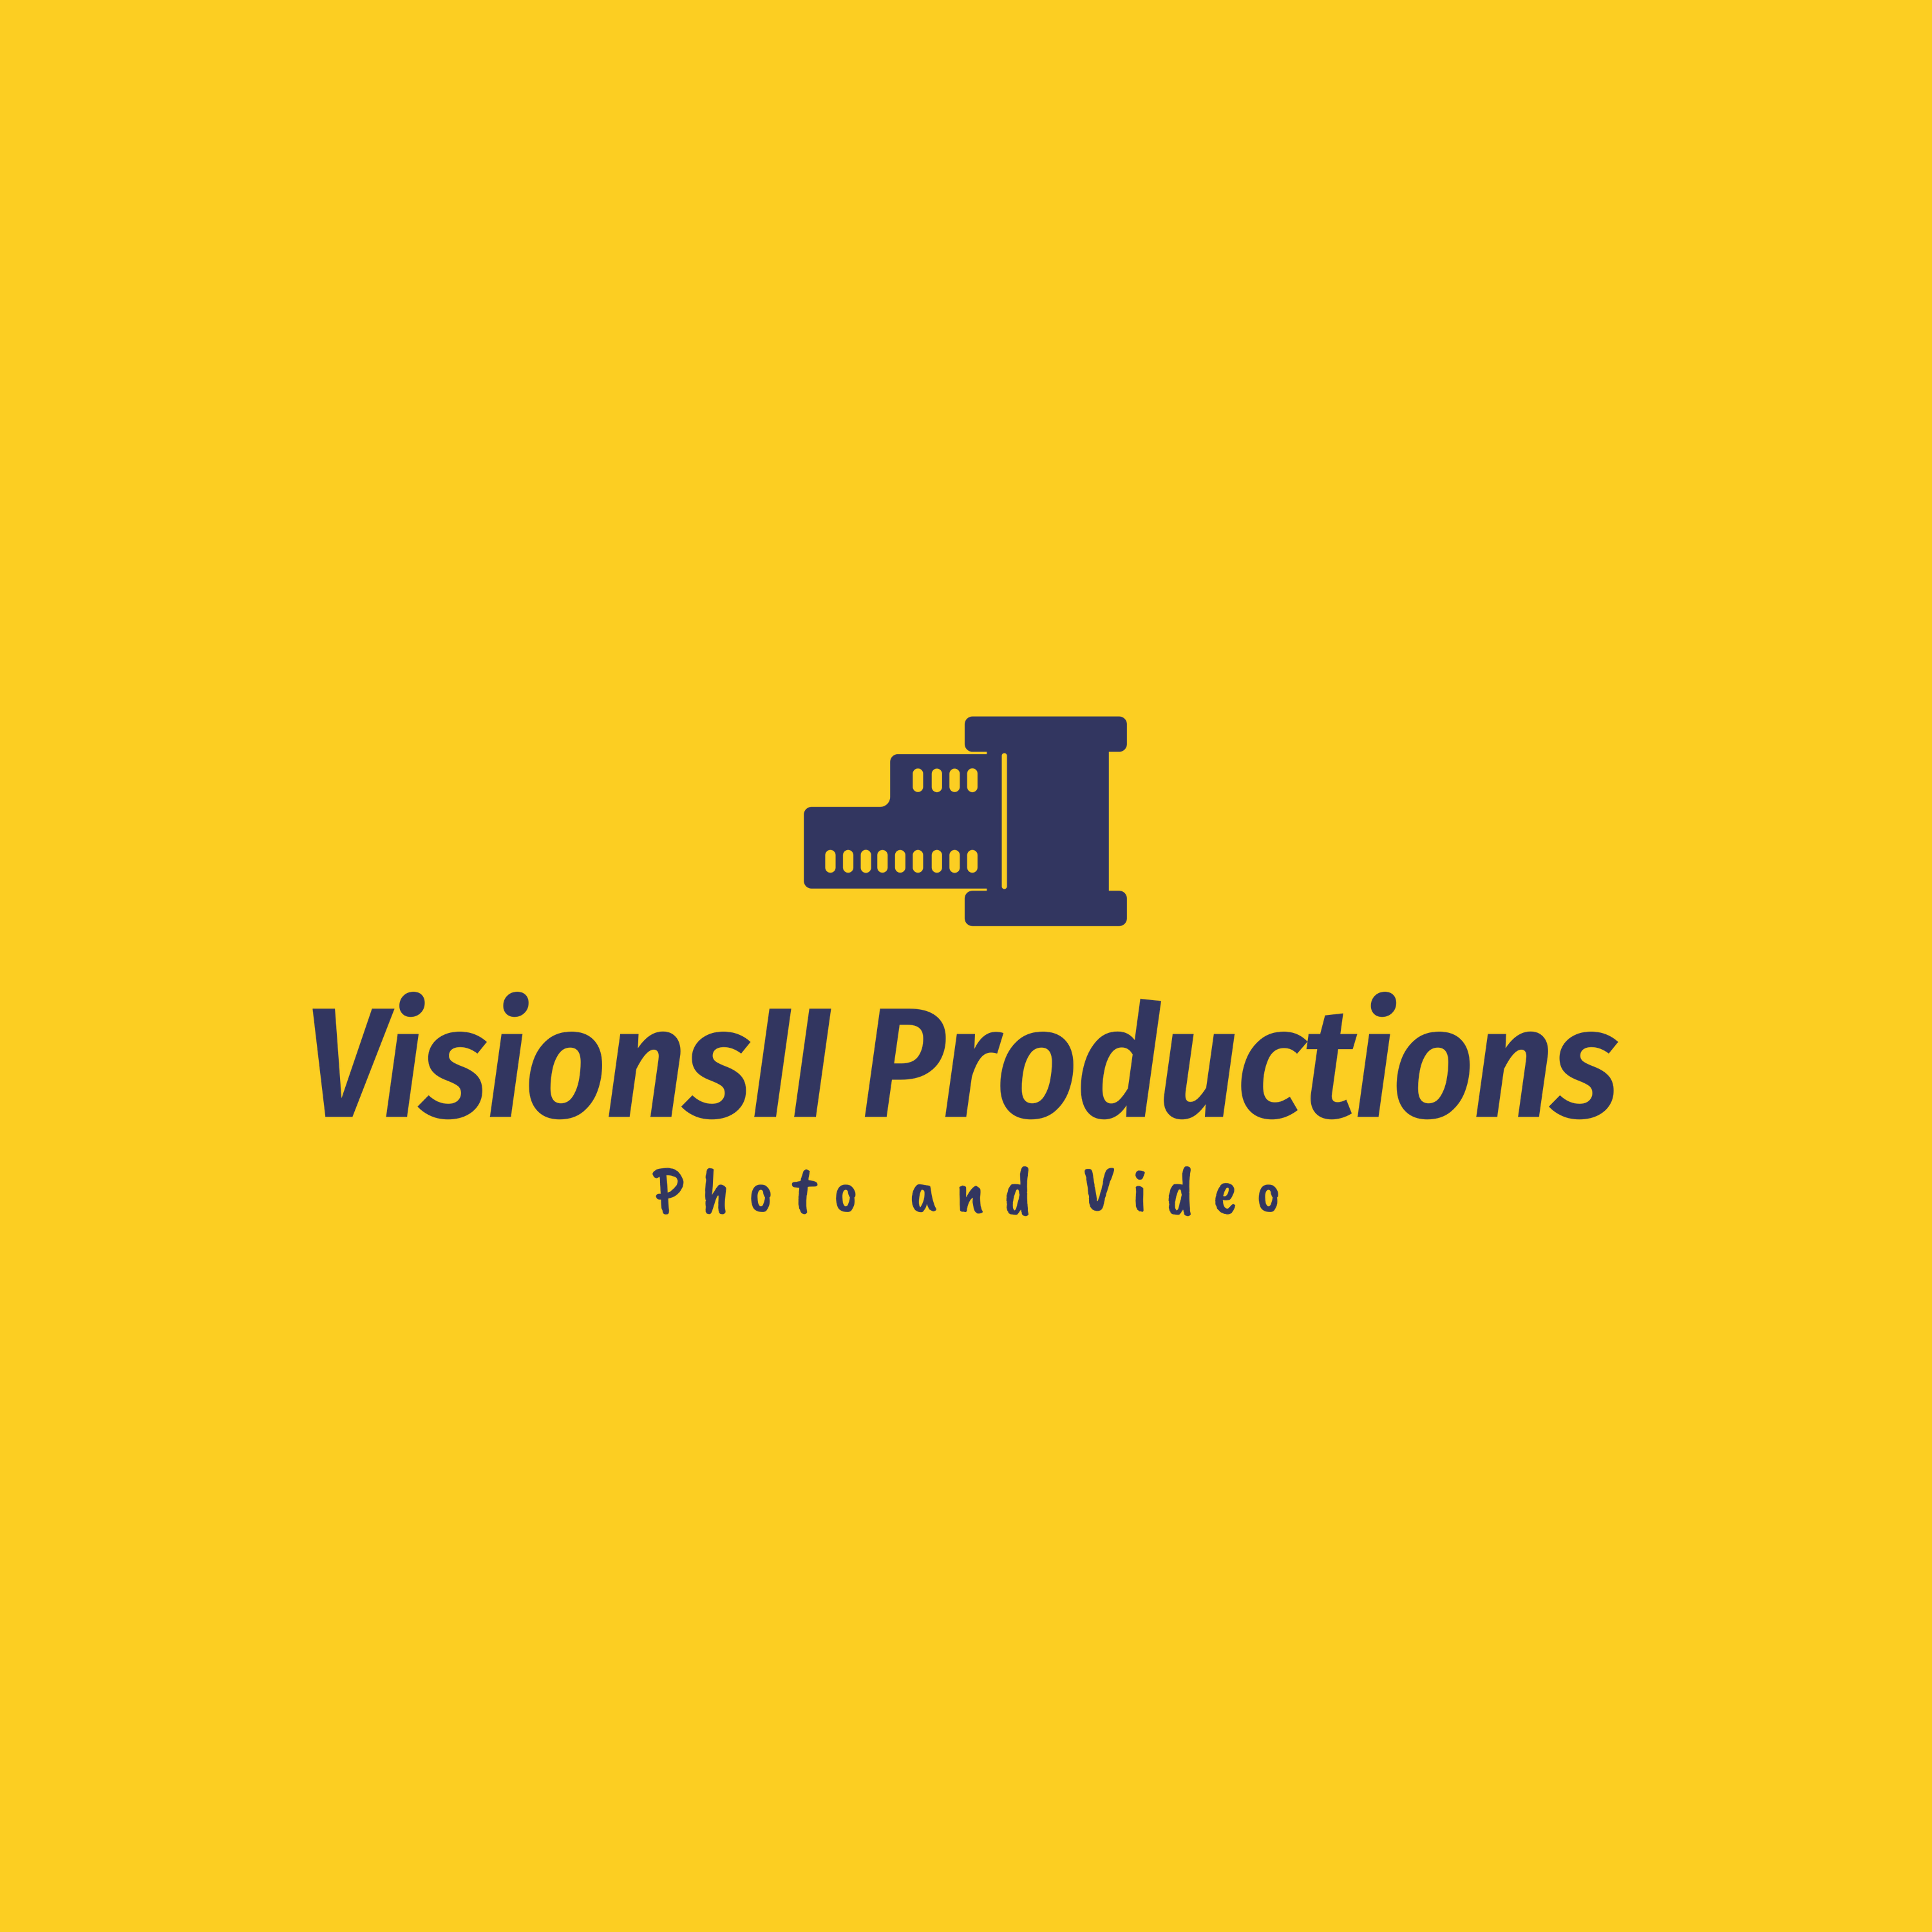 VisionsII Productions